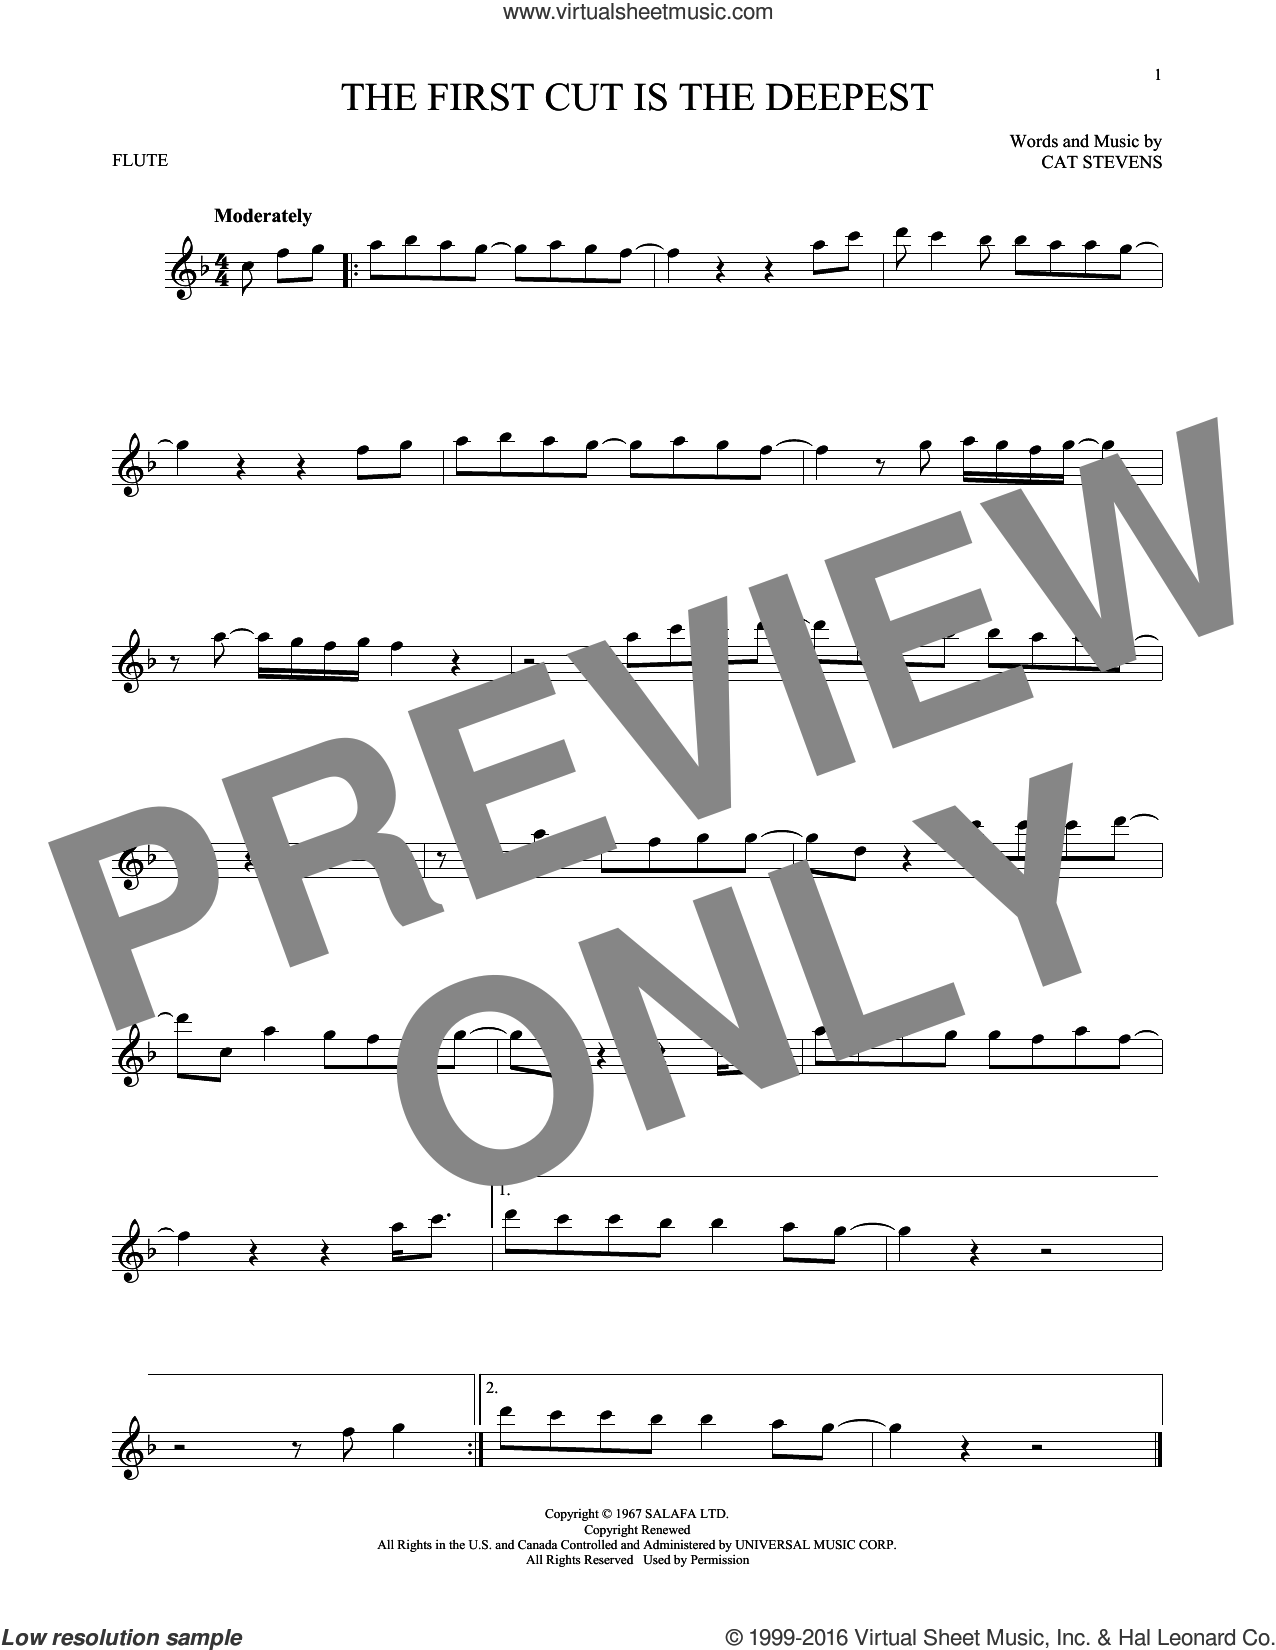 The First Cut Is The Deepest sheet music for flute solo by Cat Stevens, Rod Stewart and Sheryl Crow, intermediate skill level